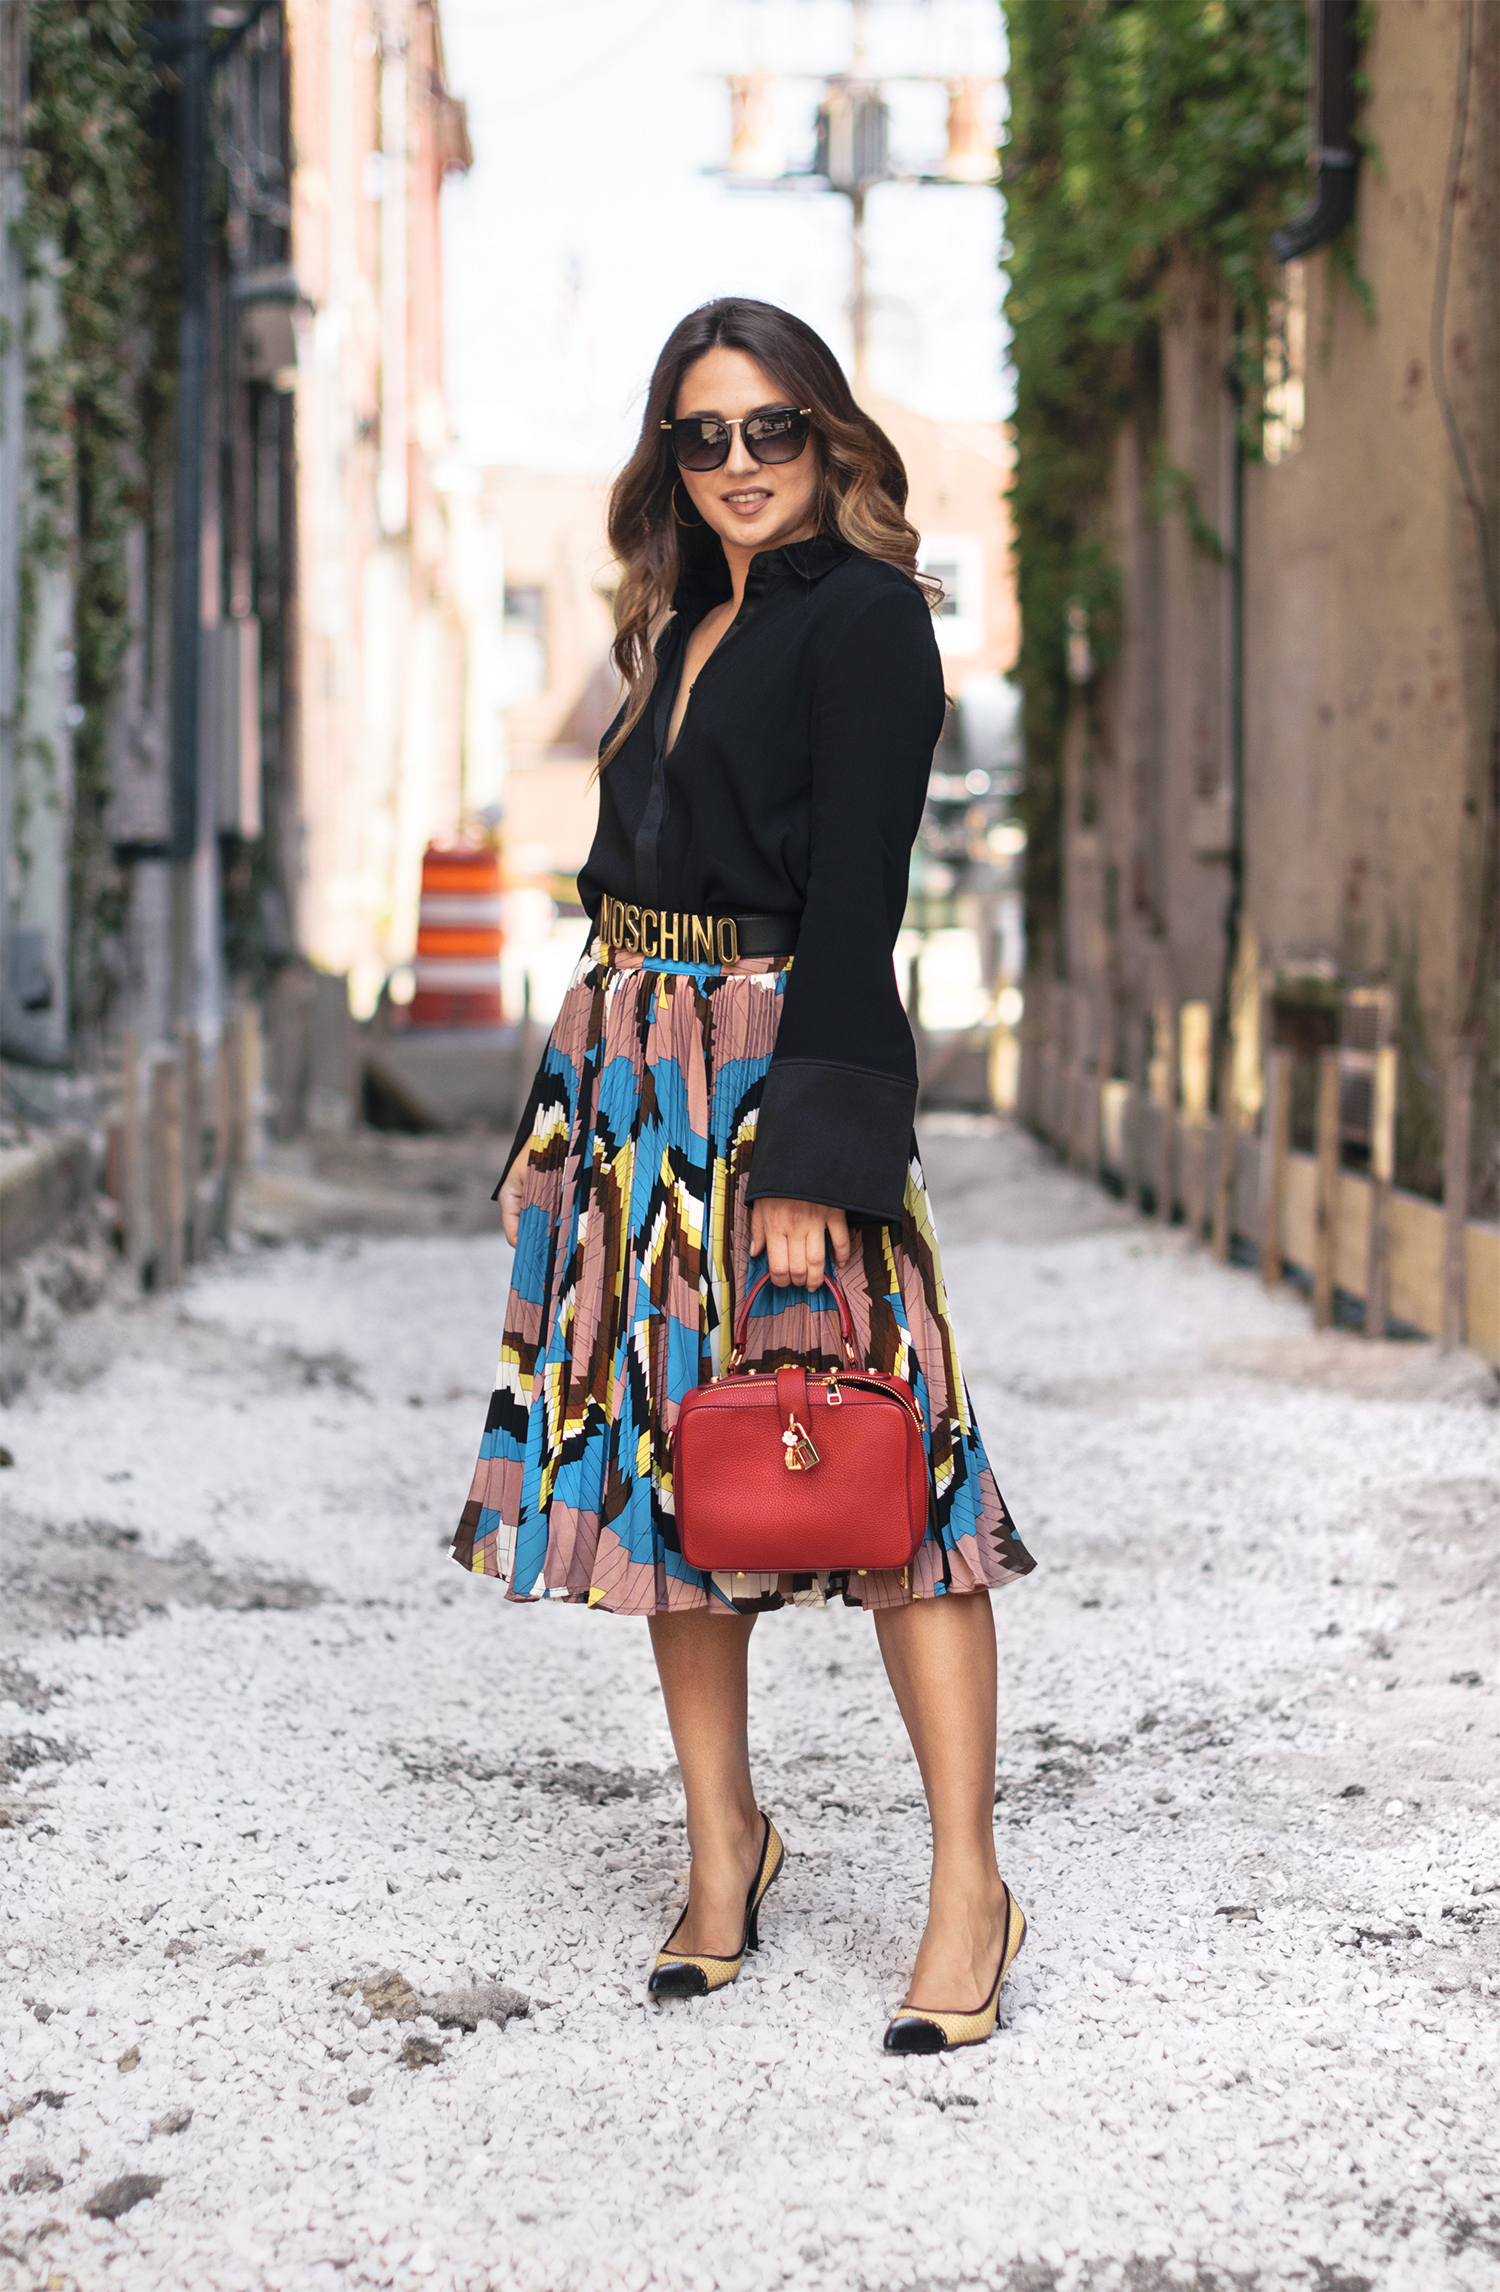 skirt-fashion-street-style-fashion-week